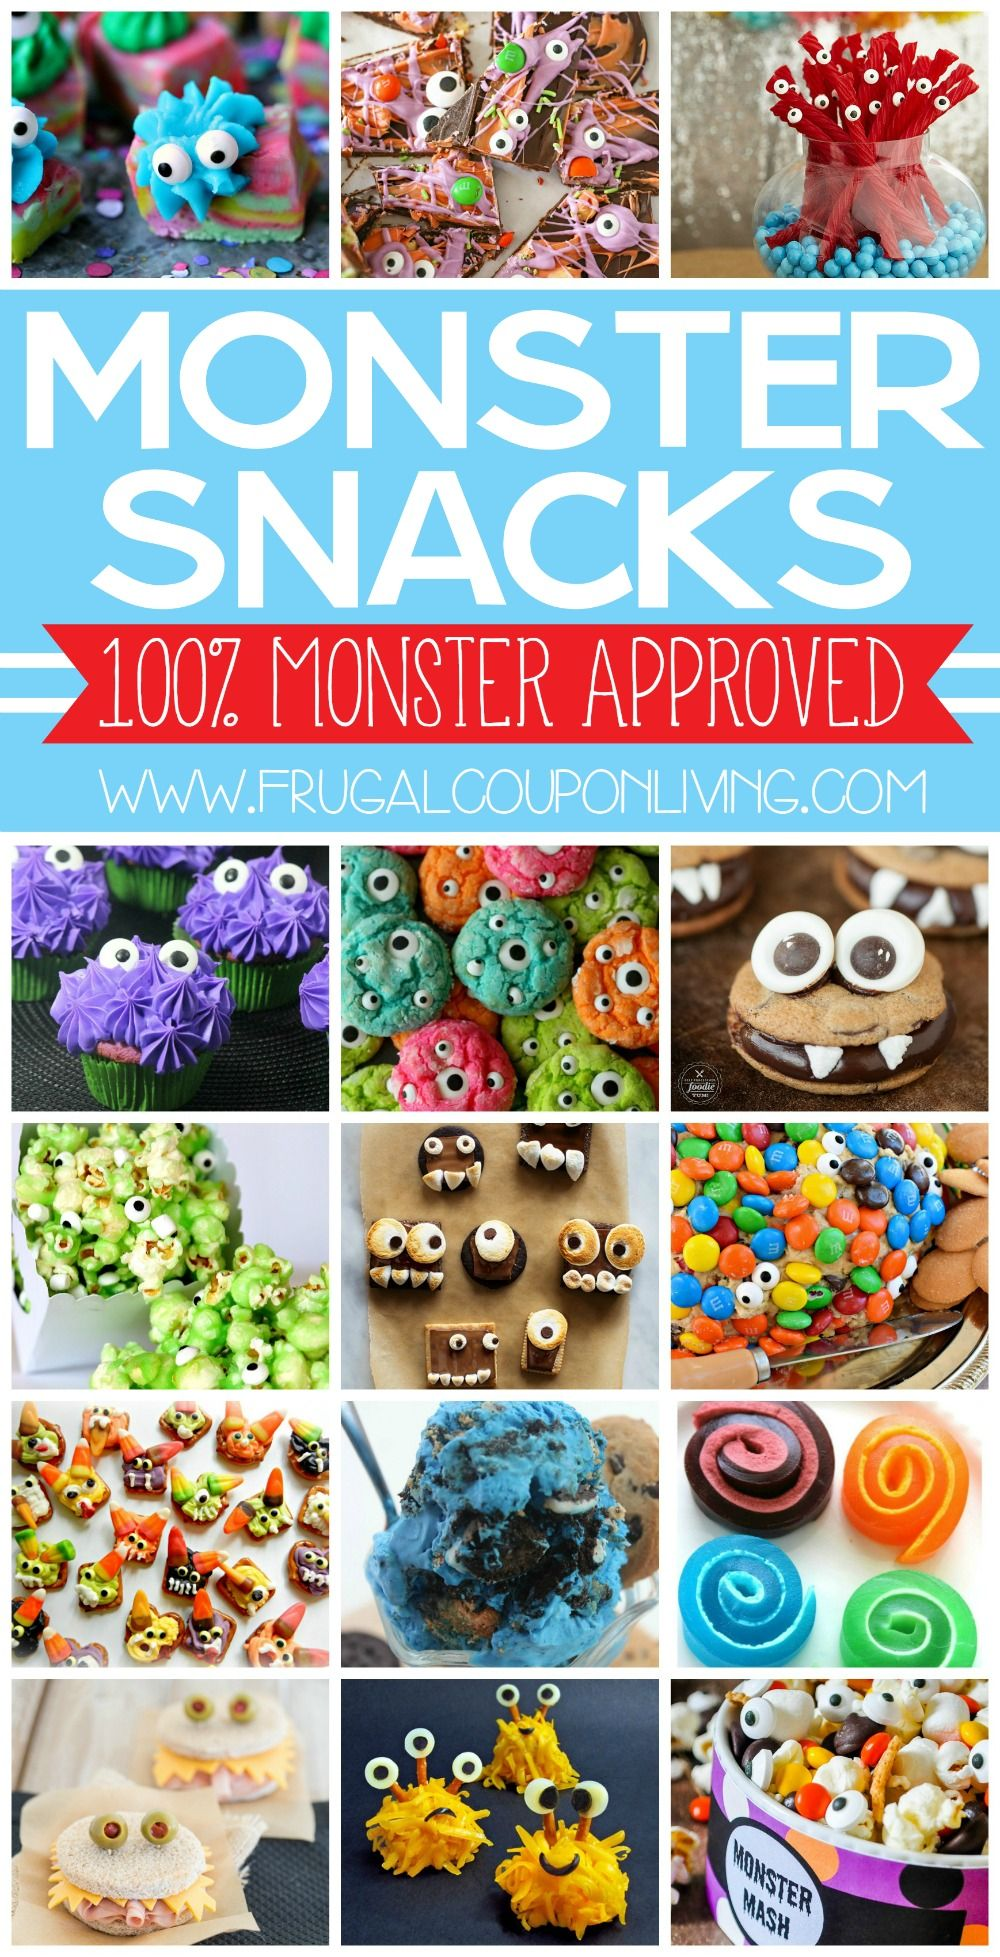 Monster Snacks for Kids and Monster Party Ideas